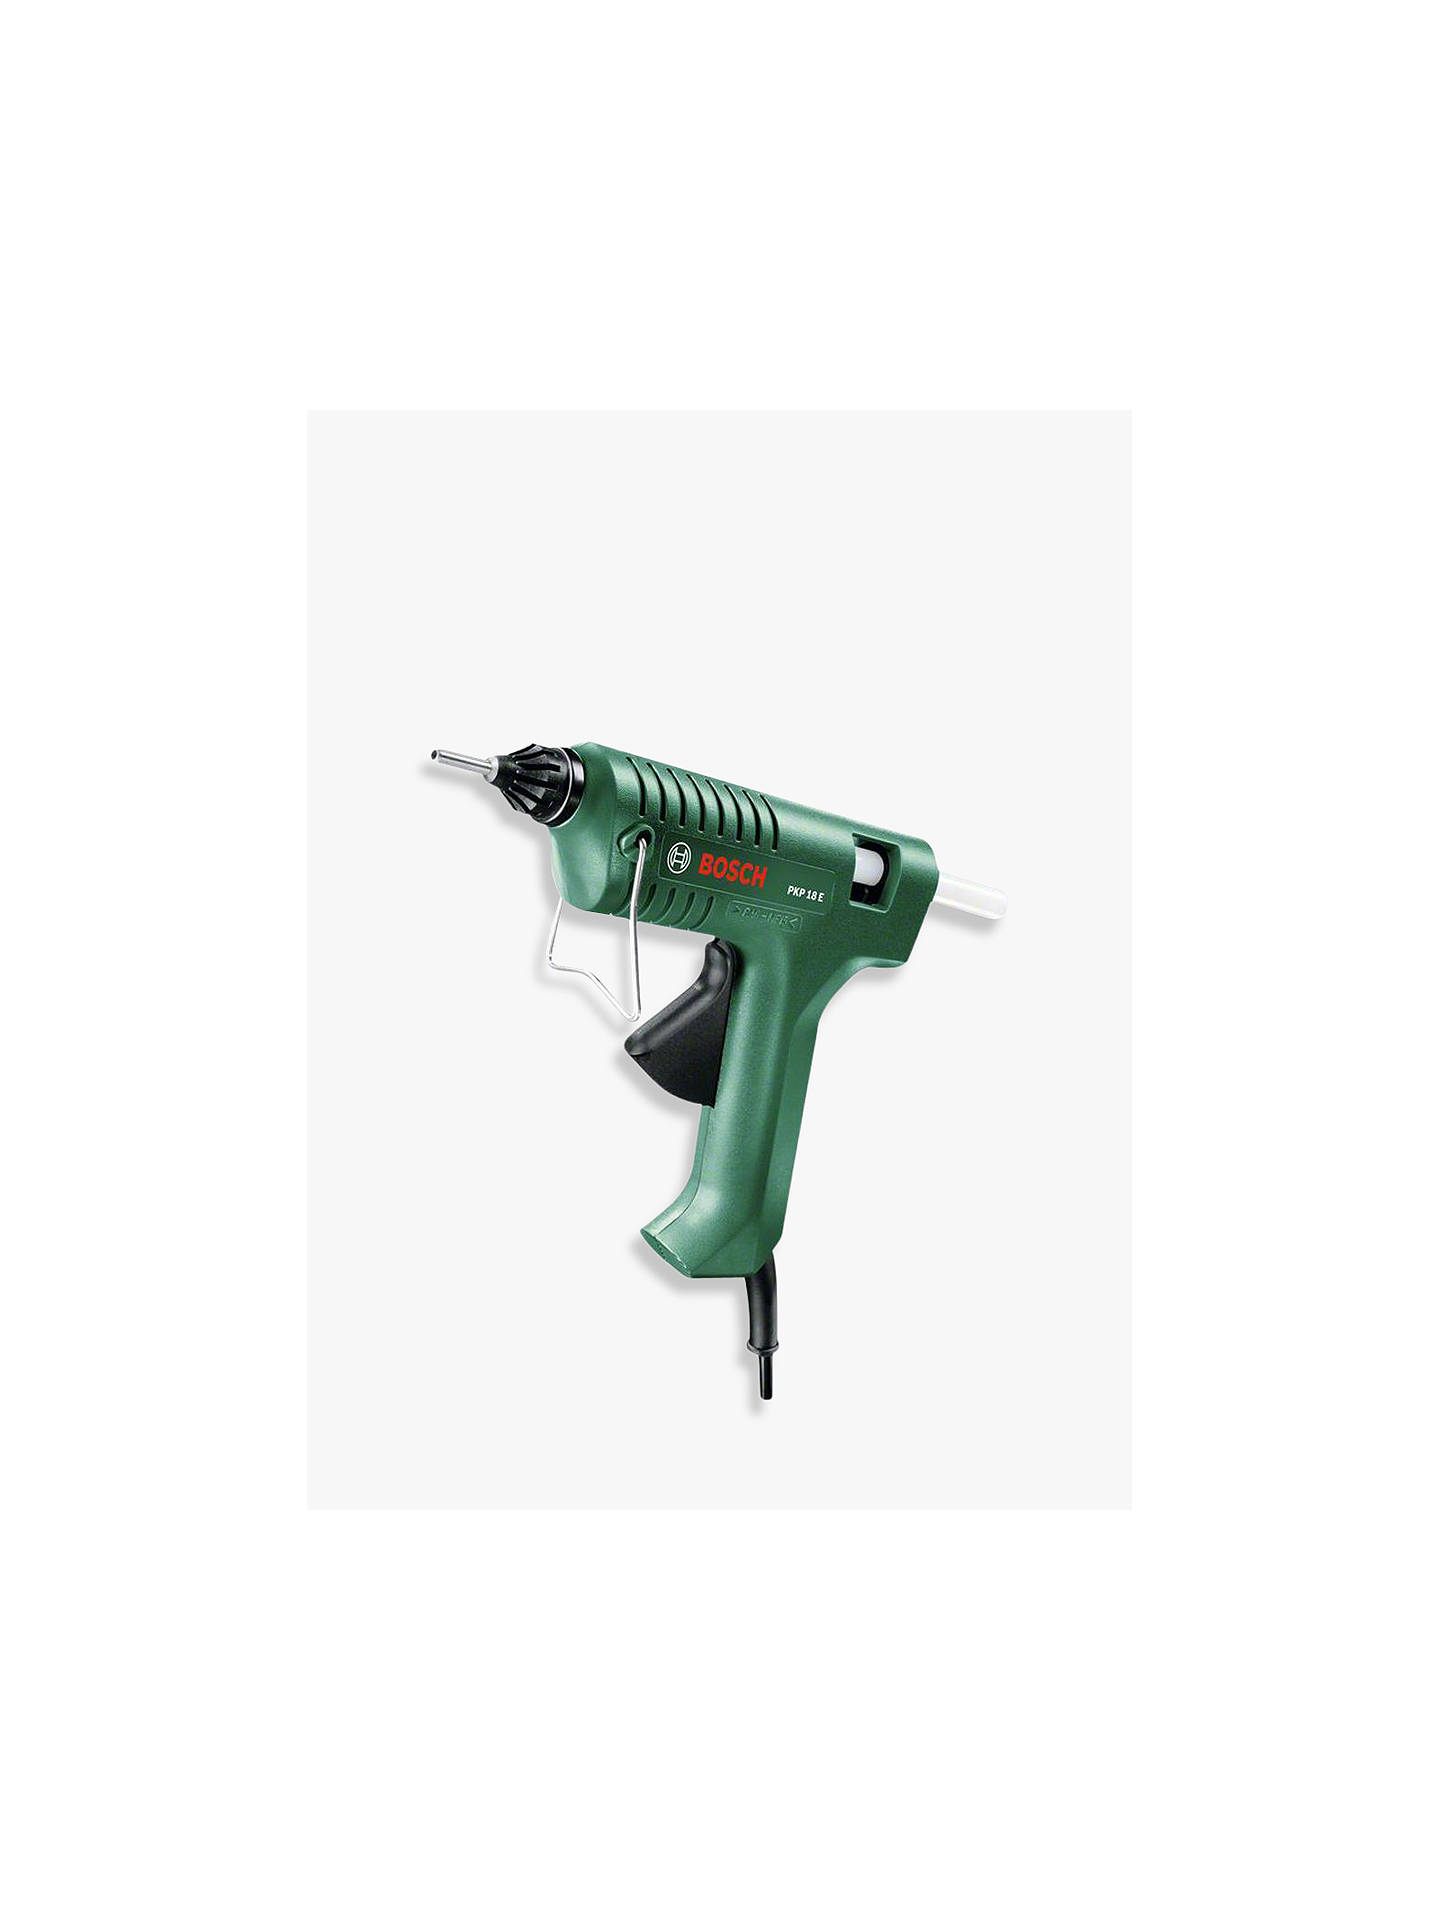 Adhesives, Sealants & Tapes Glue Guns NOZZLE ONLY BOSCH Nozzle For Bosch PKP18E Glue Gun Stick Heating